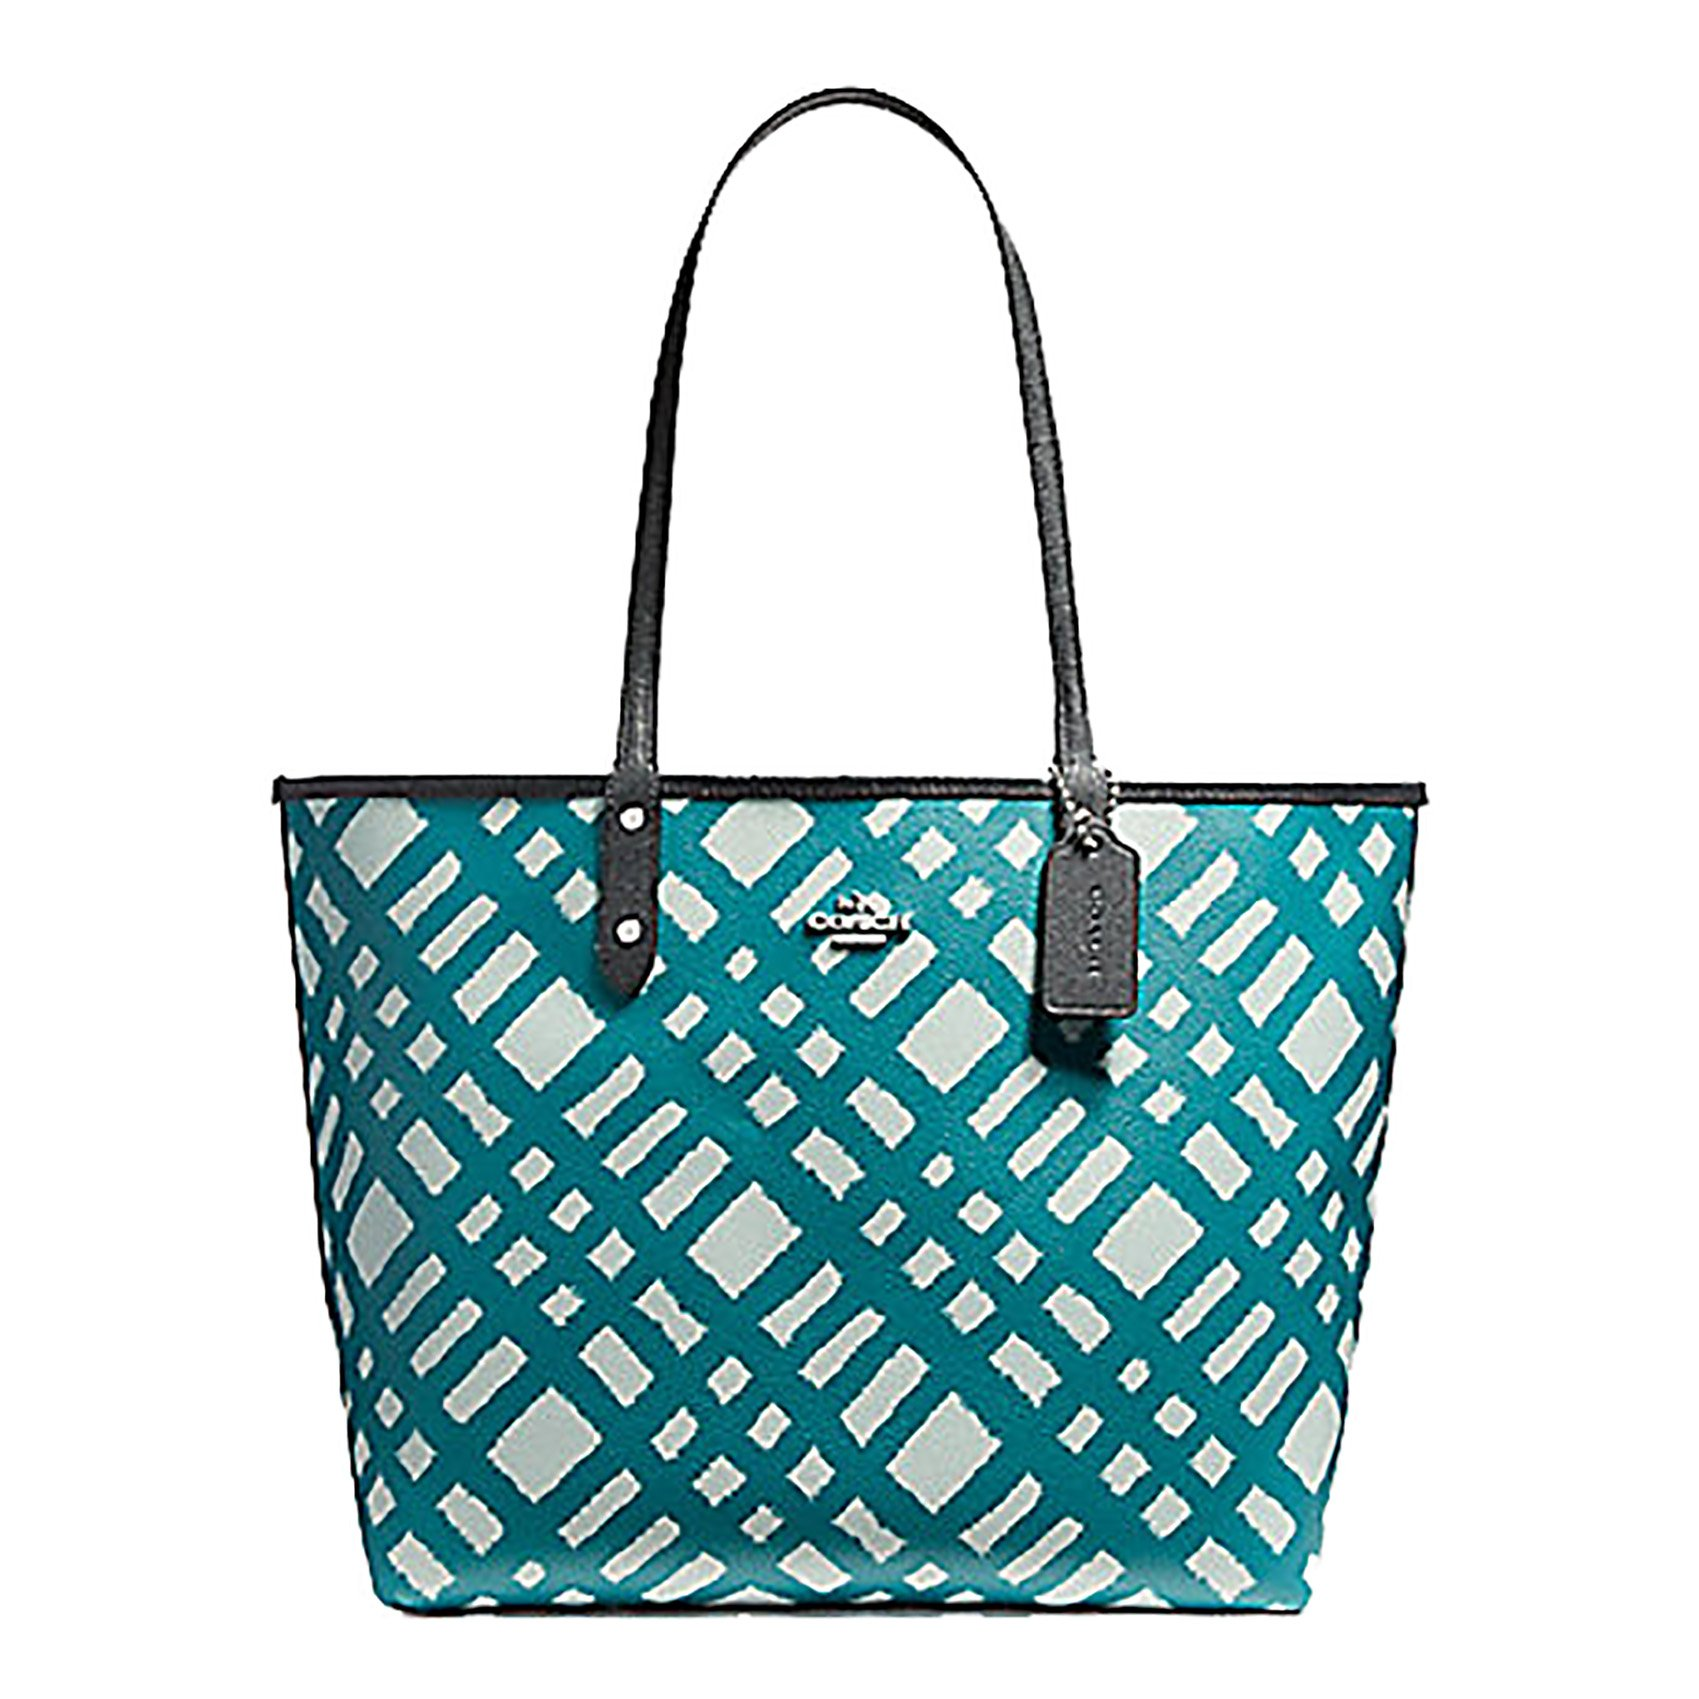 Coach Reversible Leather City Tote in Wild Plaid Print - #F22247